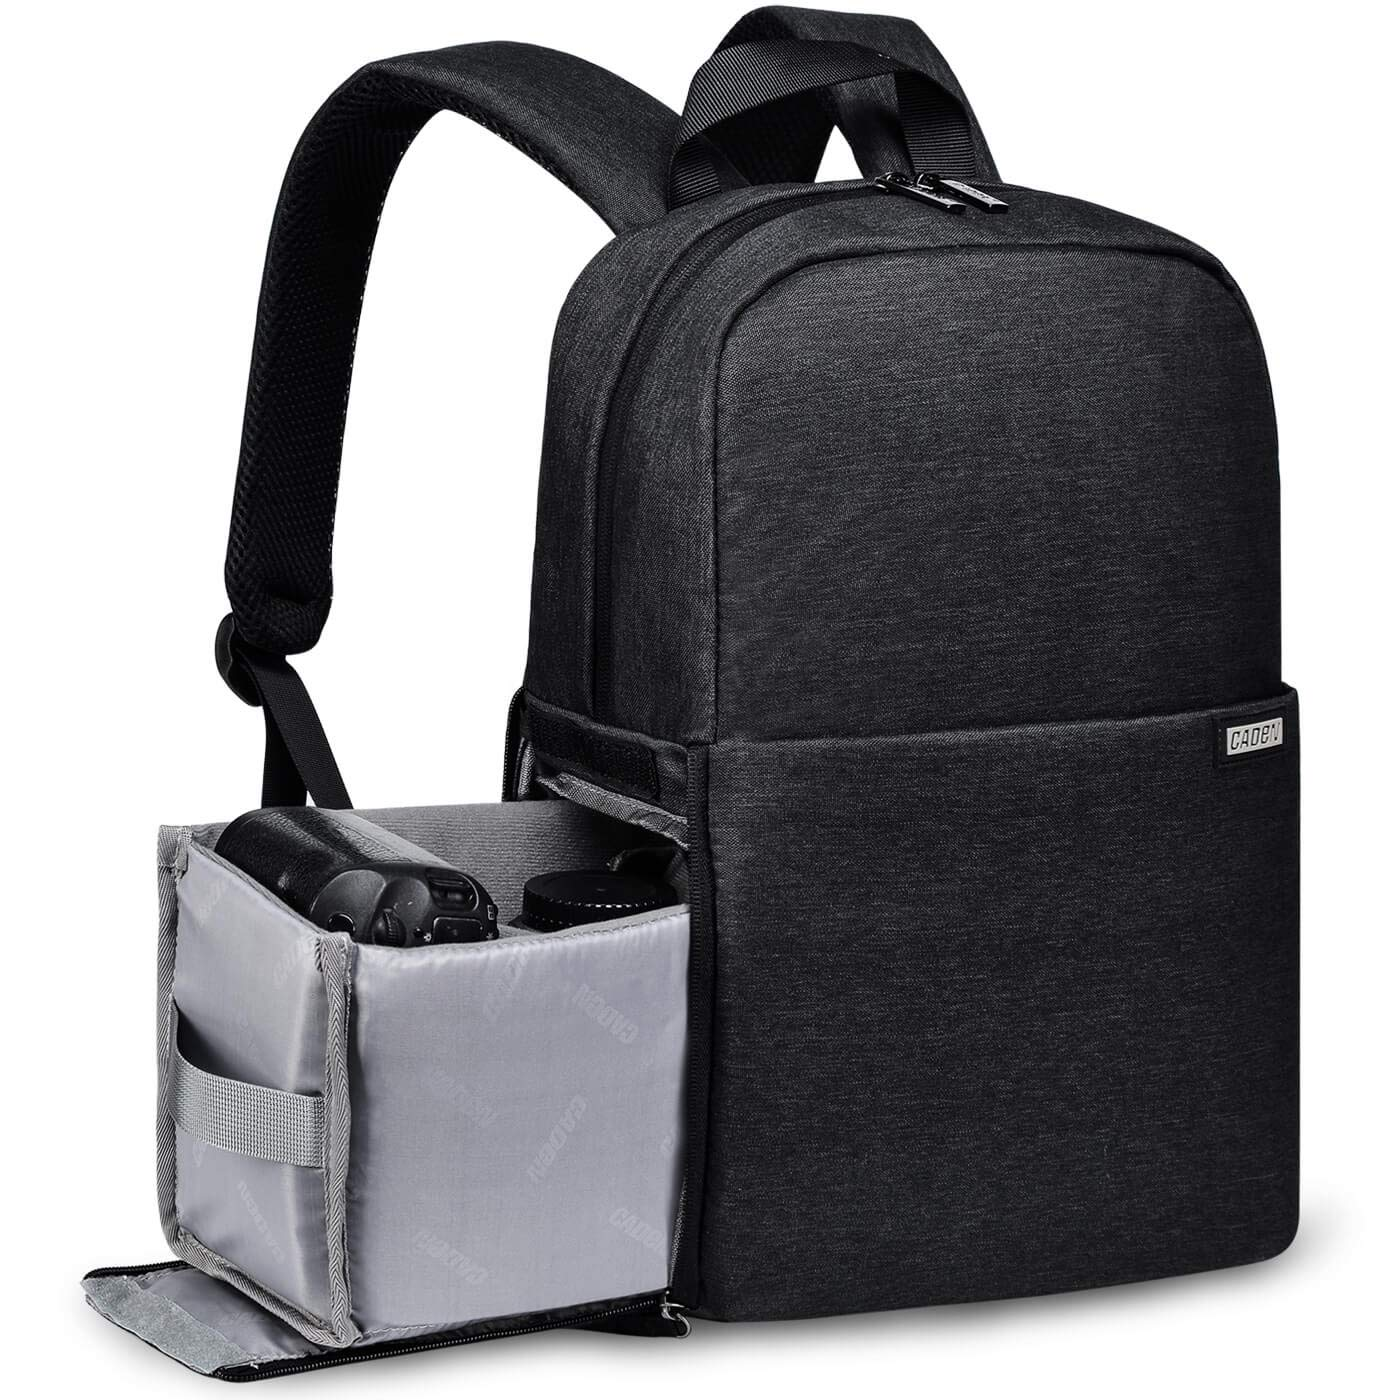 CADeN Waterproof Camera Bag Backpack DSLR Case for Women Men Anti Theft Photography and Casual Travel Bag for Canon Nikon Sony Tripod